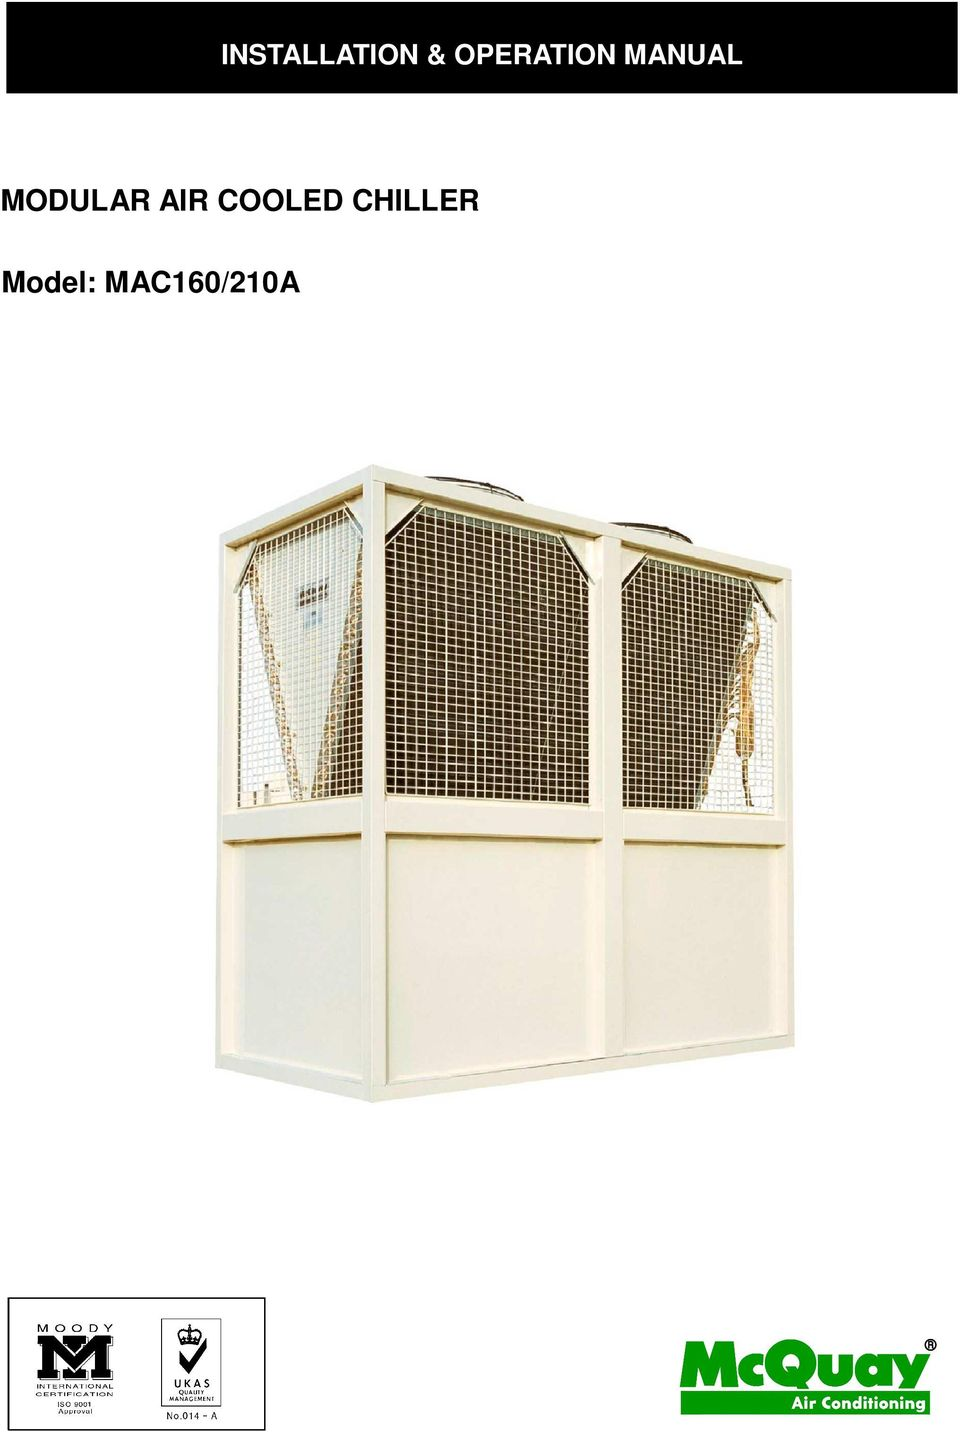 Installation operation manual modular air cooled chiller pdf modular air cooled asfbconference2016 Image collections